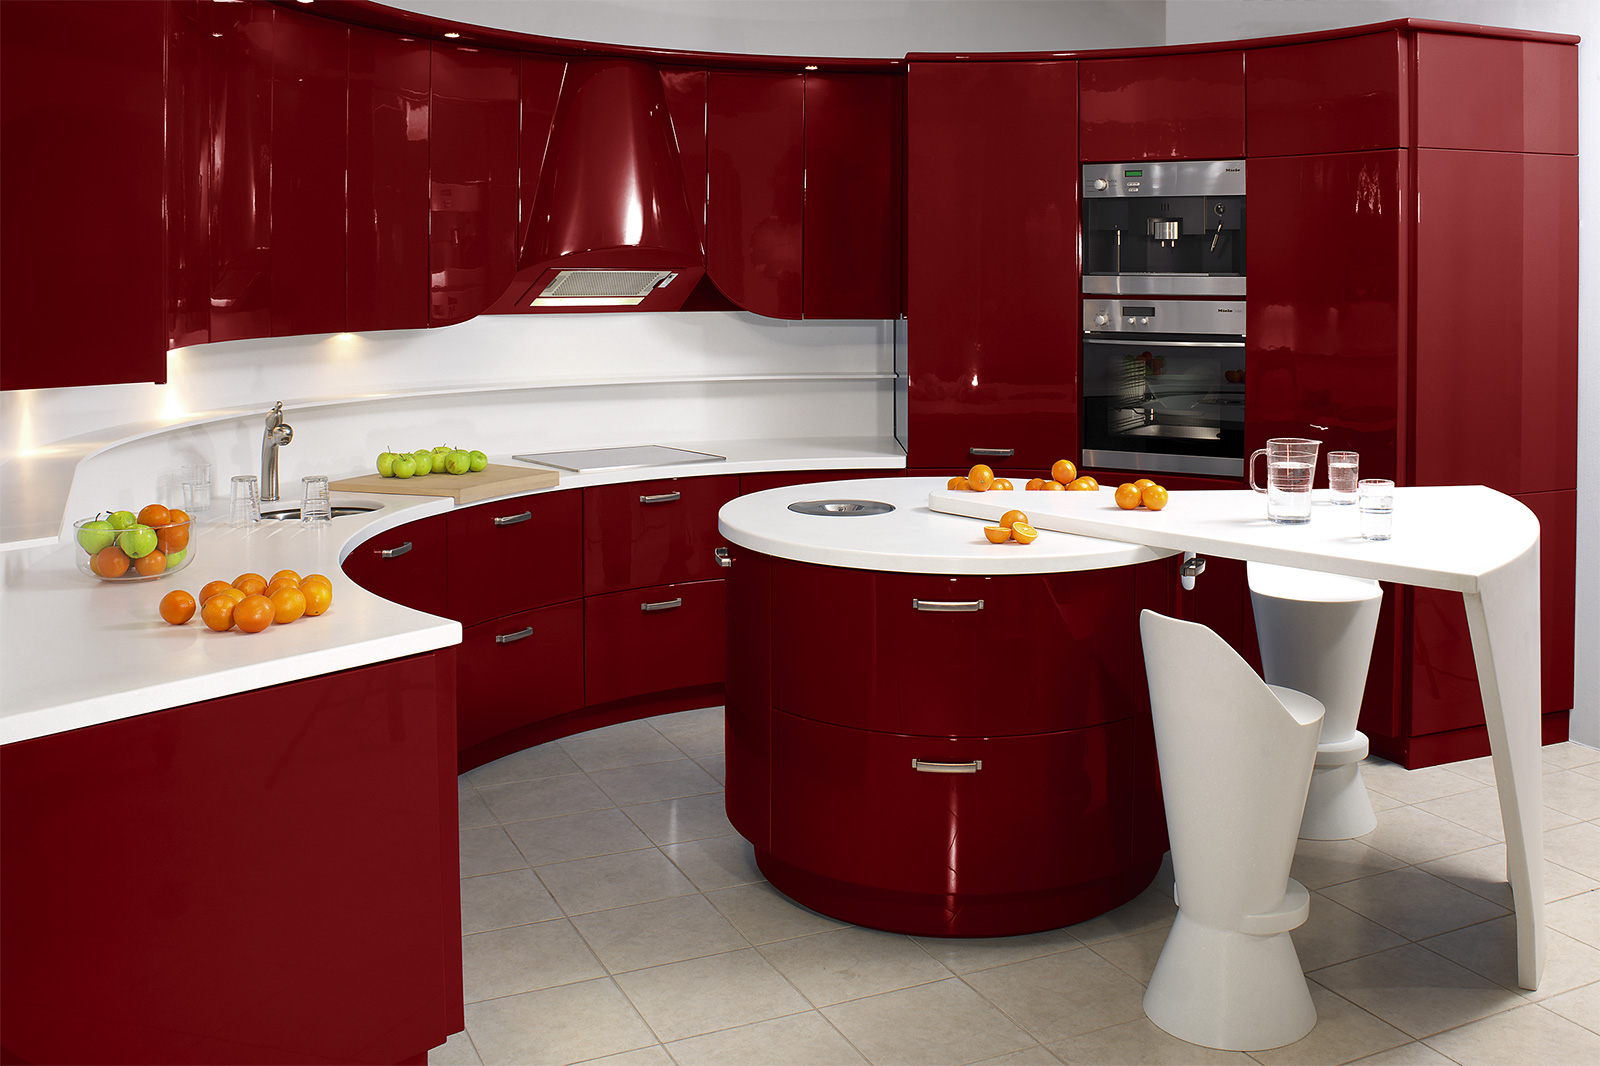 Teasing Idea of Red Kitchen Cabinets with Charming Countertop in Curve Shape Design